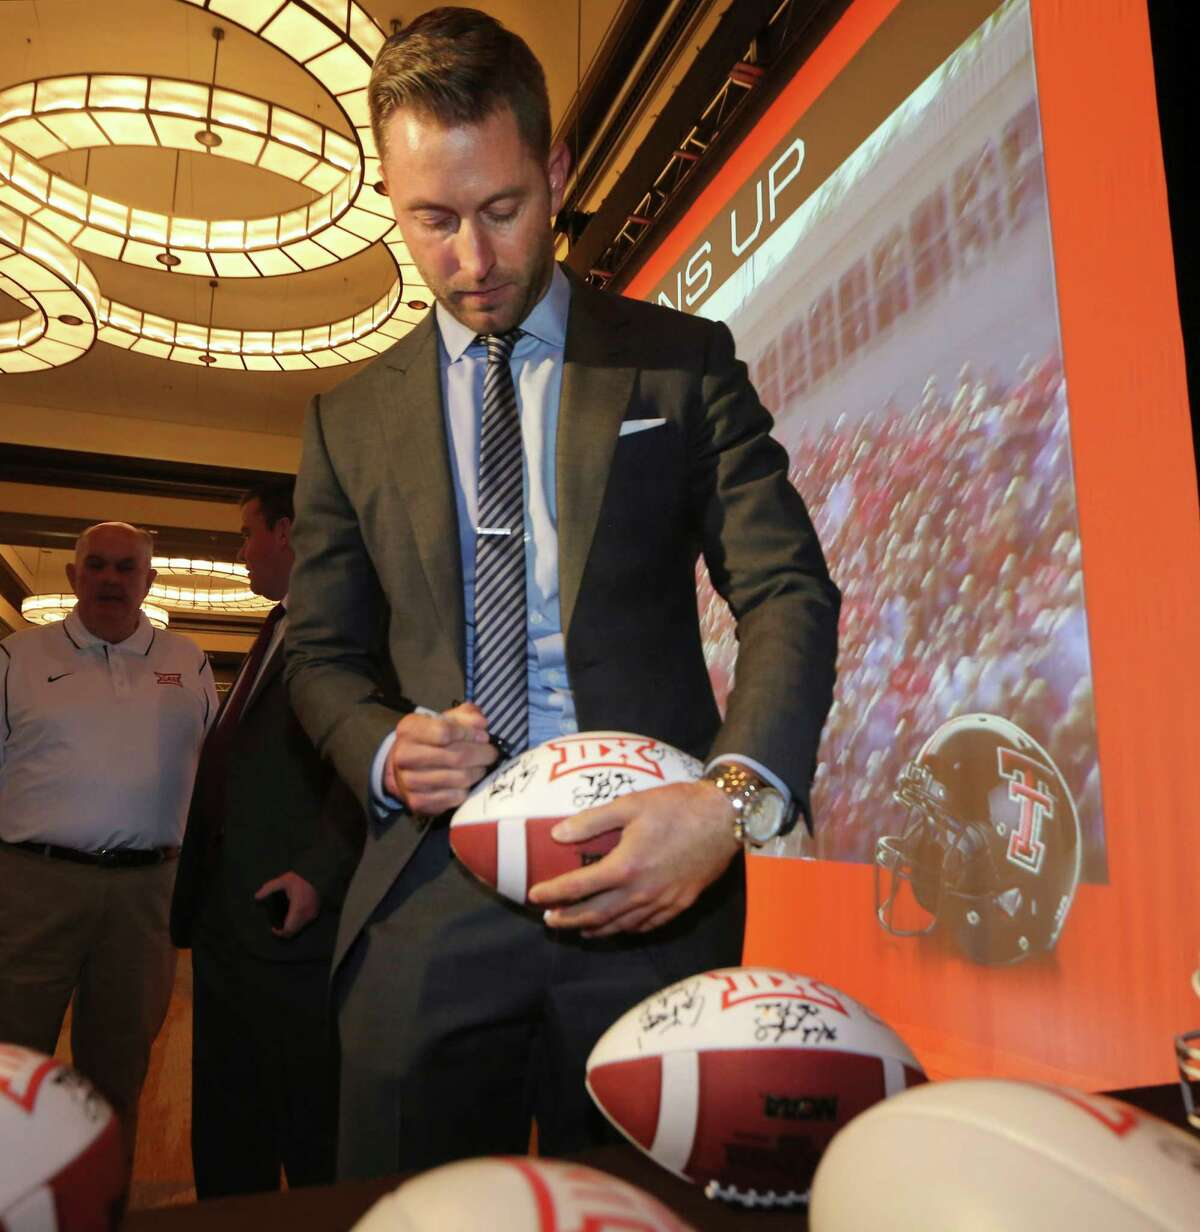 Proof the watch is fake ... Texas Tech football coach Kliff Kingsbury signs a football during the NCAA college Big 12 Conference football media days in Dallas, Monday, July 21, 2014. The watch seen on his wrist could be a $100 fake. (AP Photo/LM Otero)